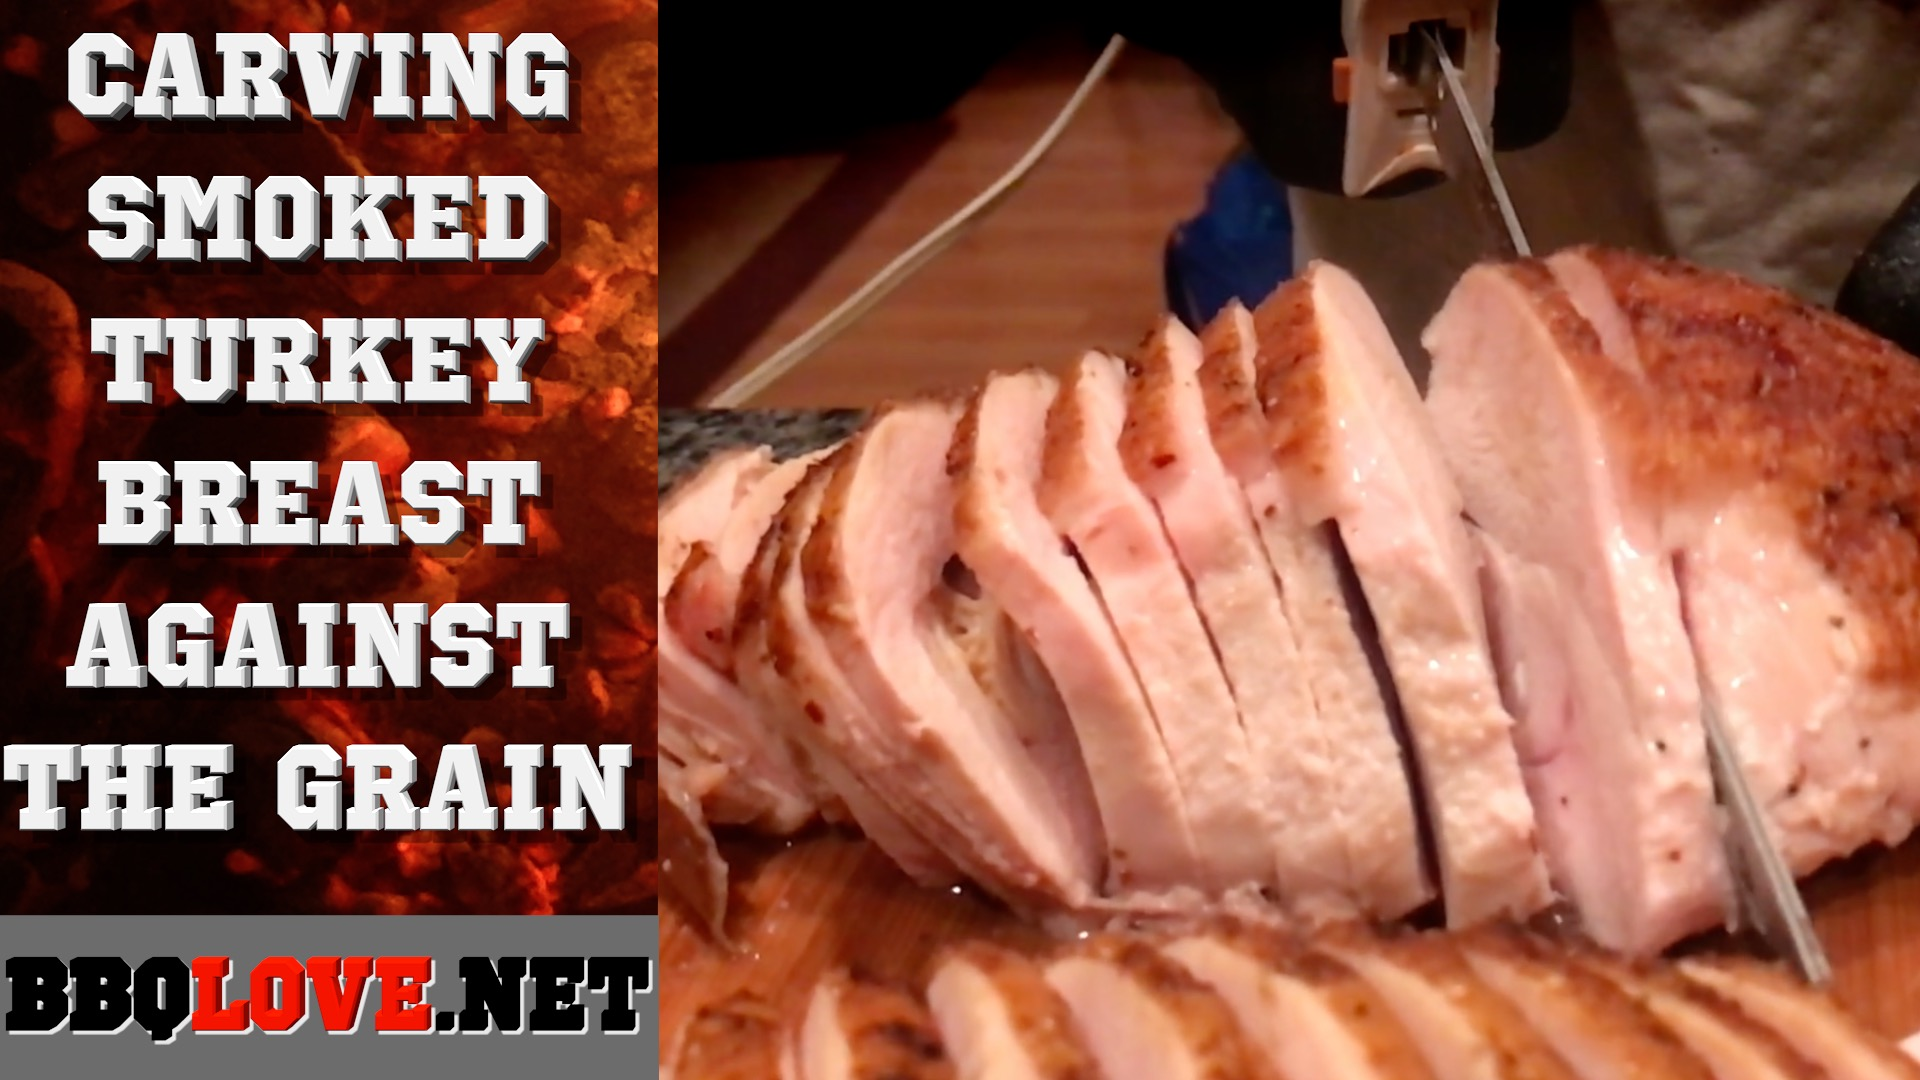 Carving A Smoked Turkey Breast Against The Grain Using An Electric Knife Getting A Juicy Jiggle